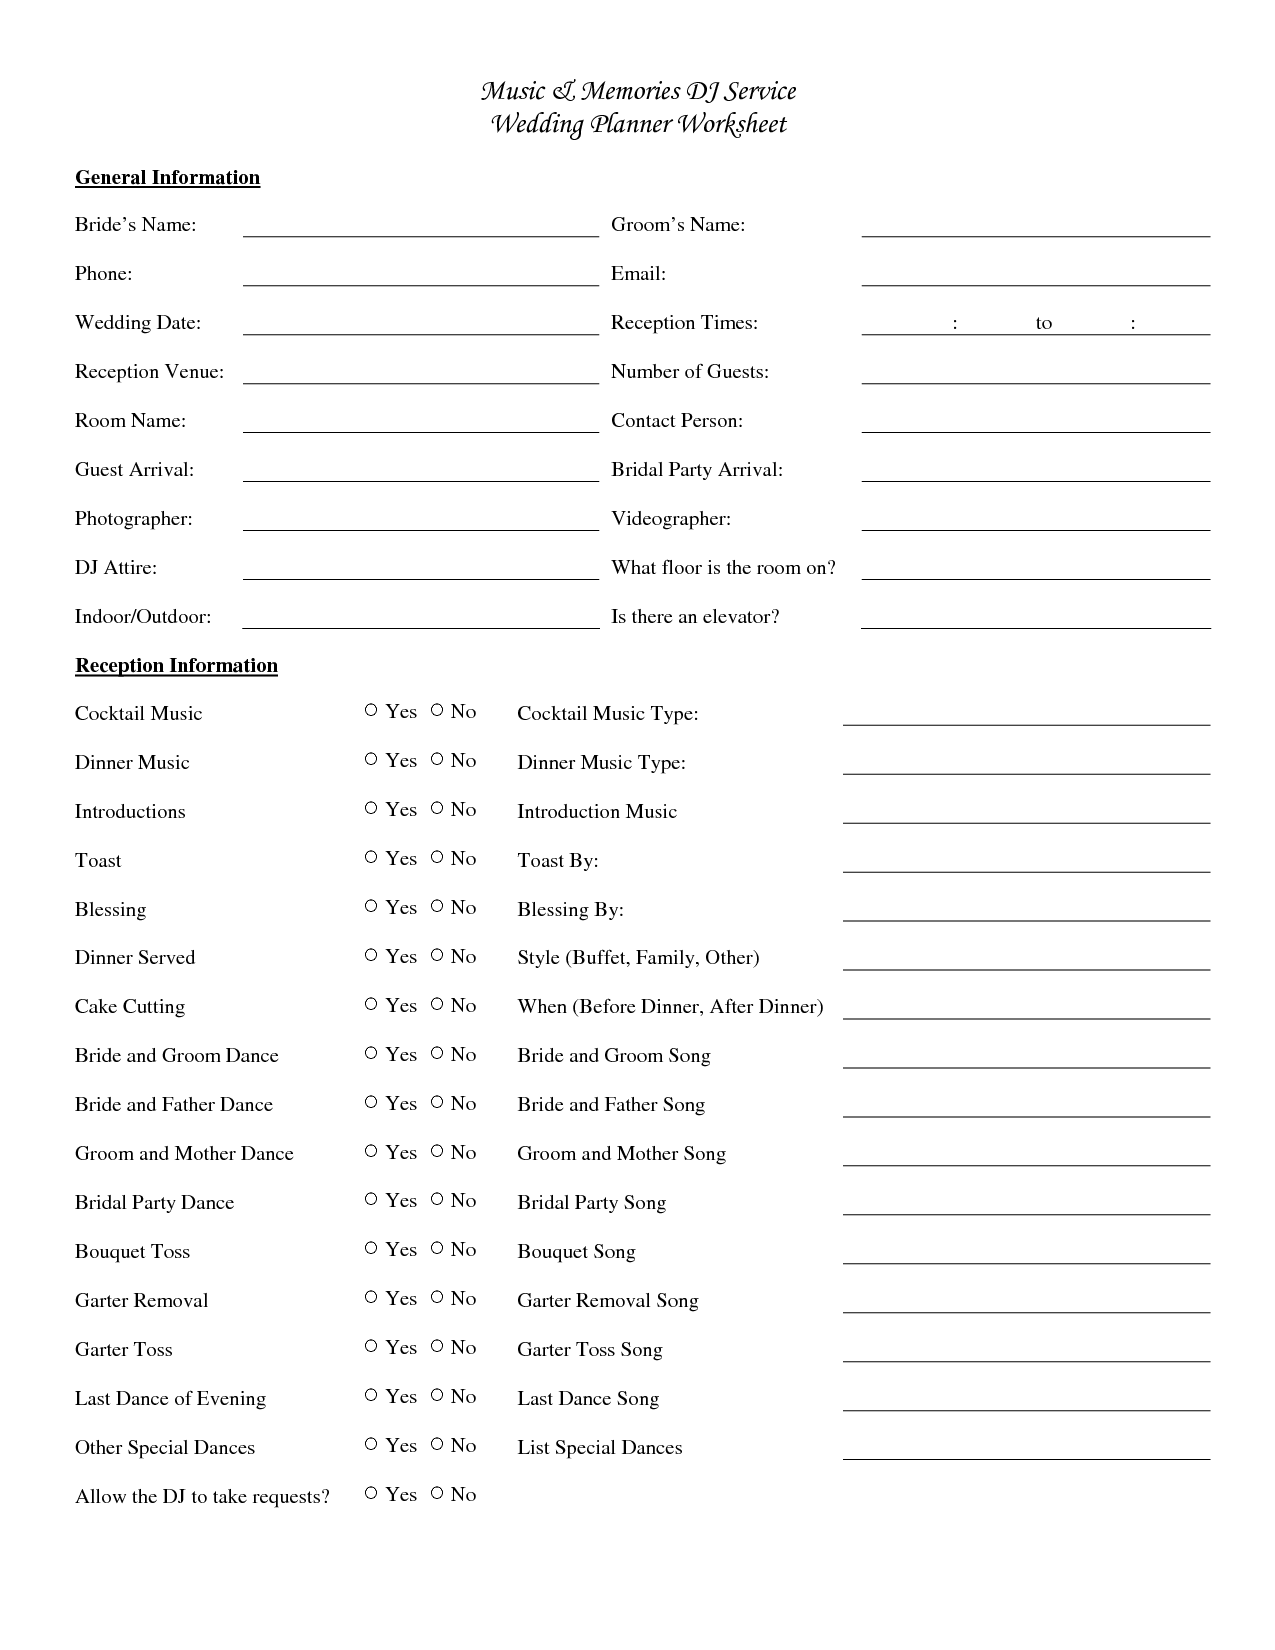 Worksheets Wedding Planning Worksheet wedding dj checklist music memories service planner worksheet yes no yes